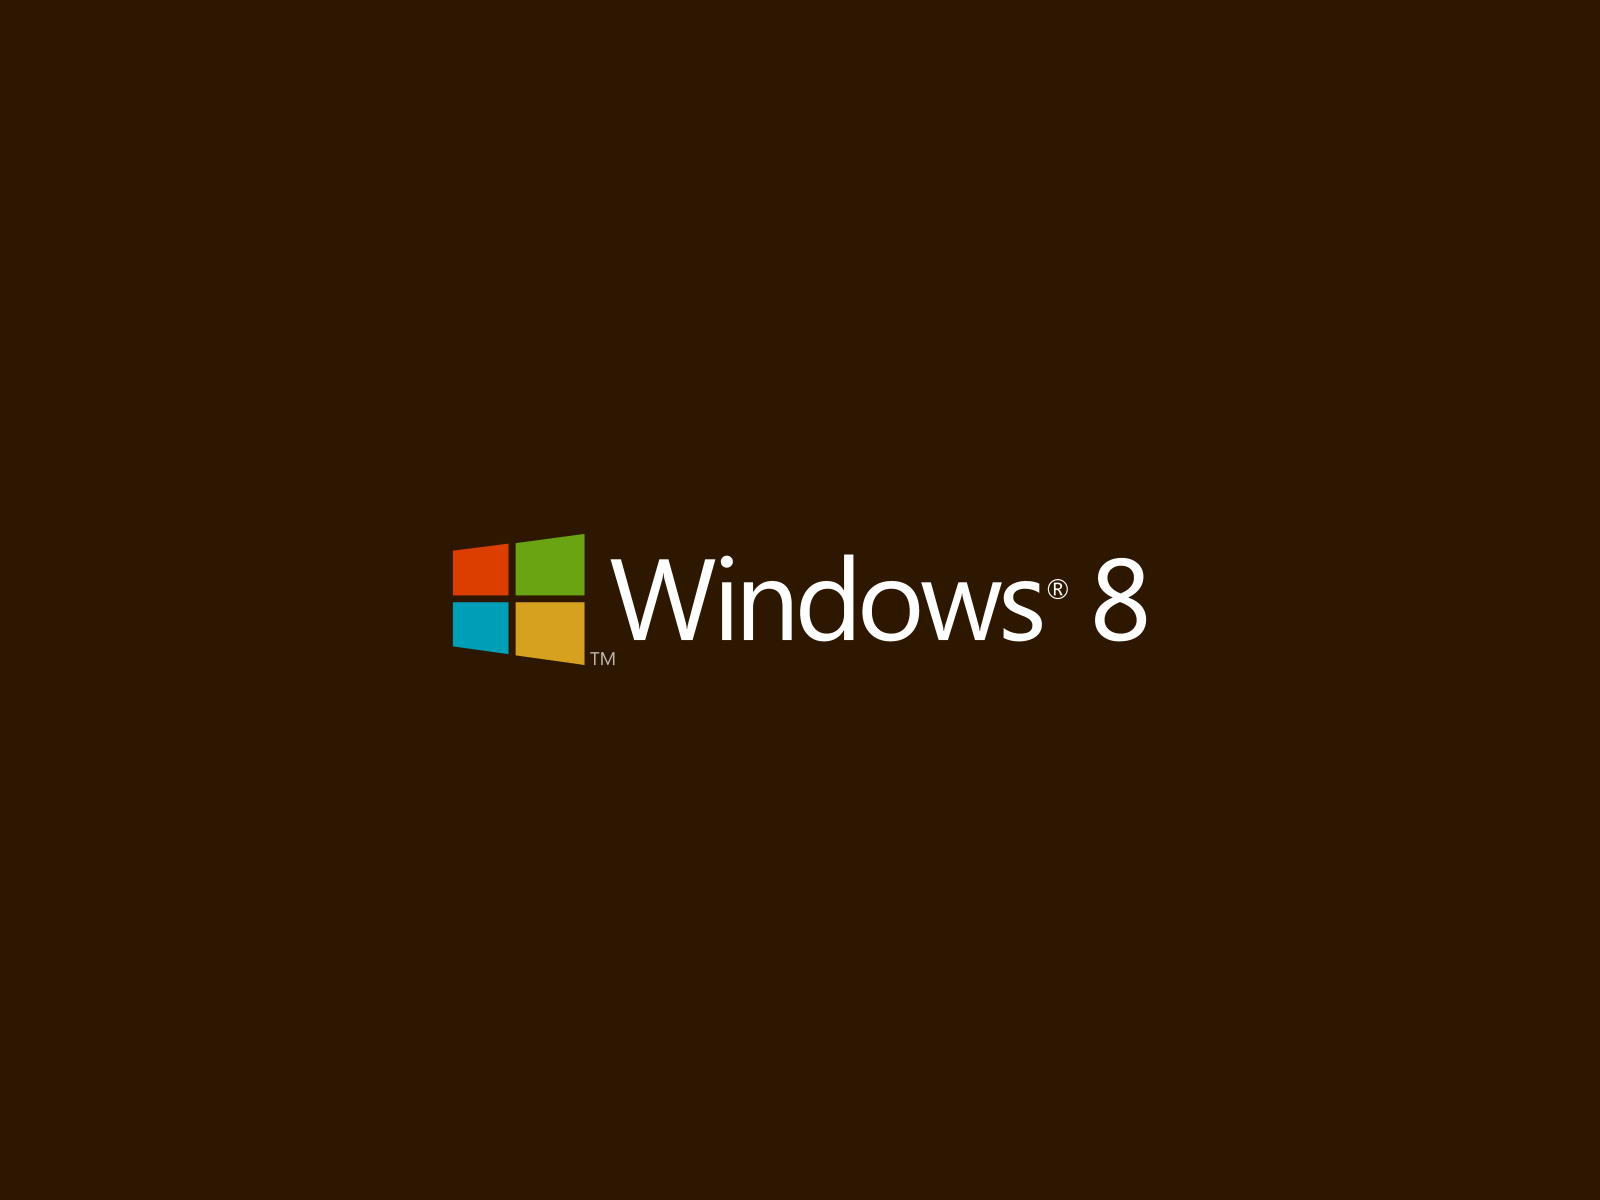 1600x1200 Windows 8 Brown Background desktop PC and Mac wallpaper 1600x1200